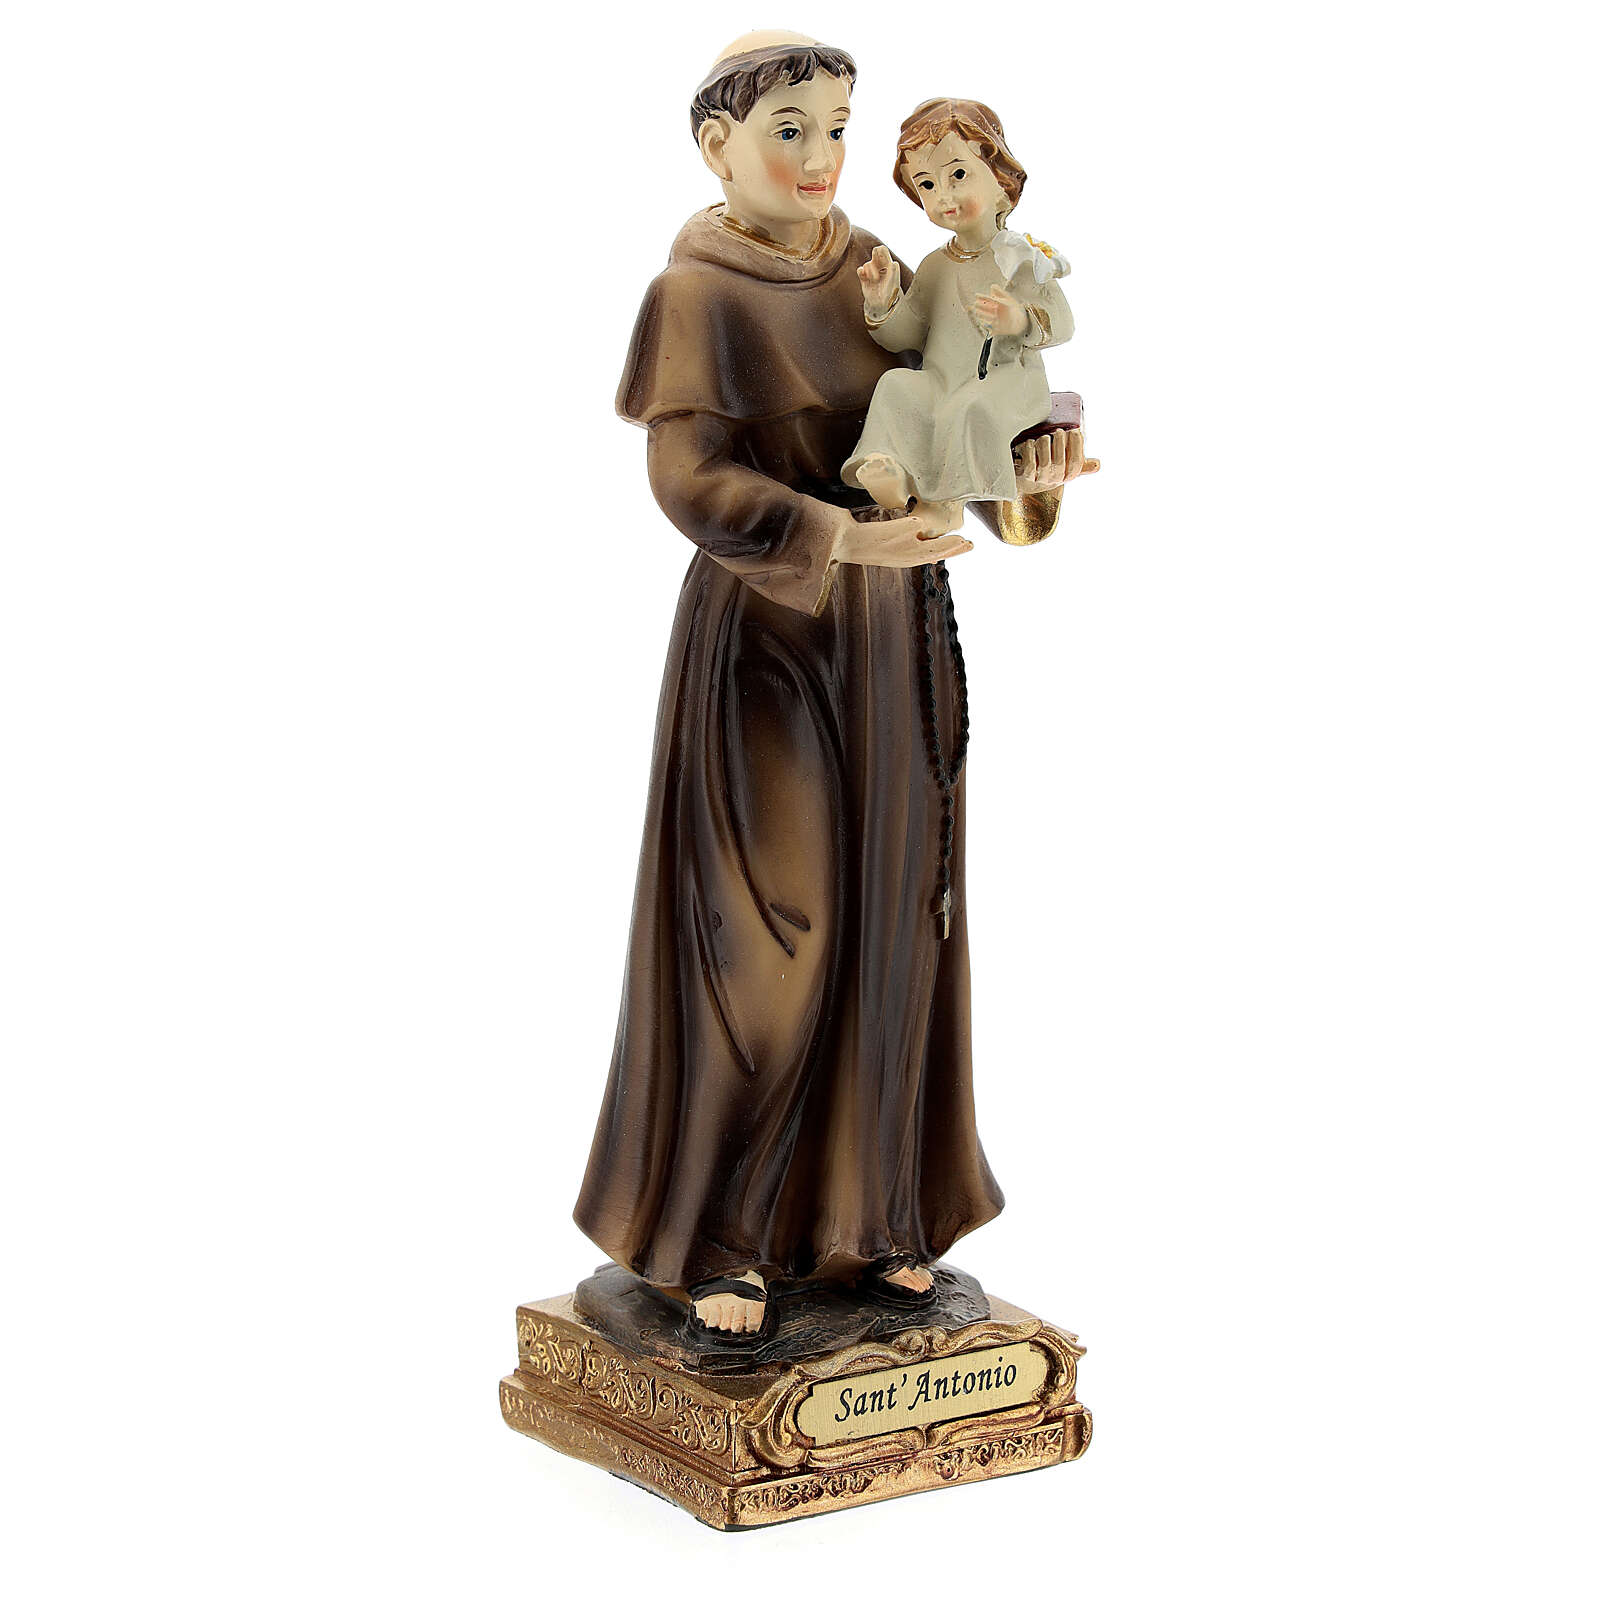 Statue of St Anthony Padua 15 cm, golden resin 4